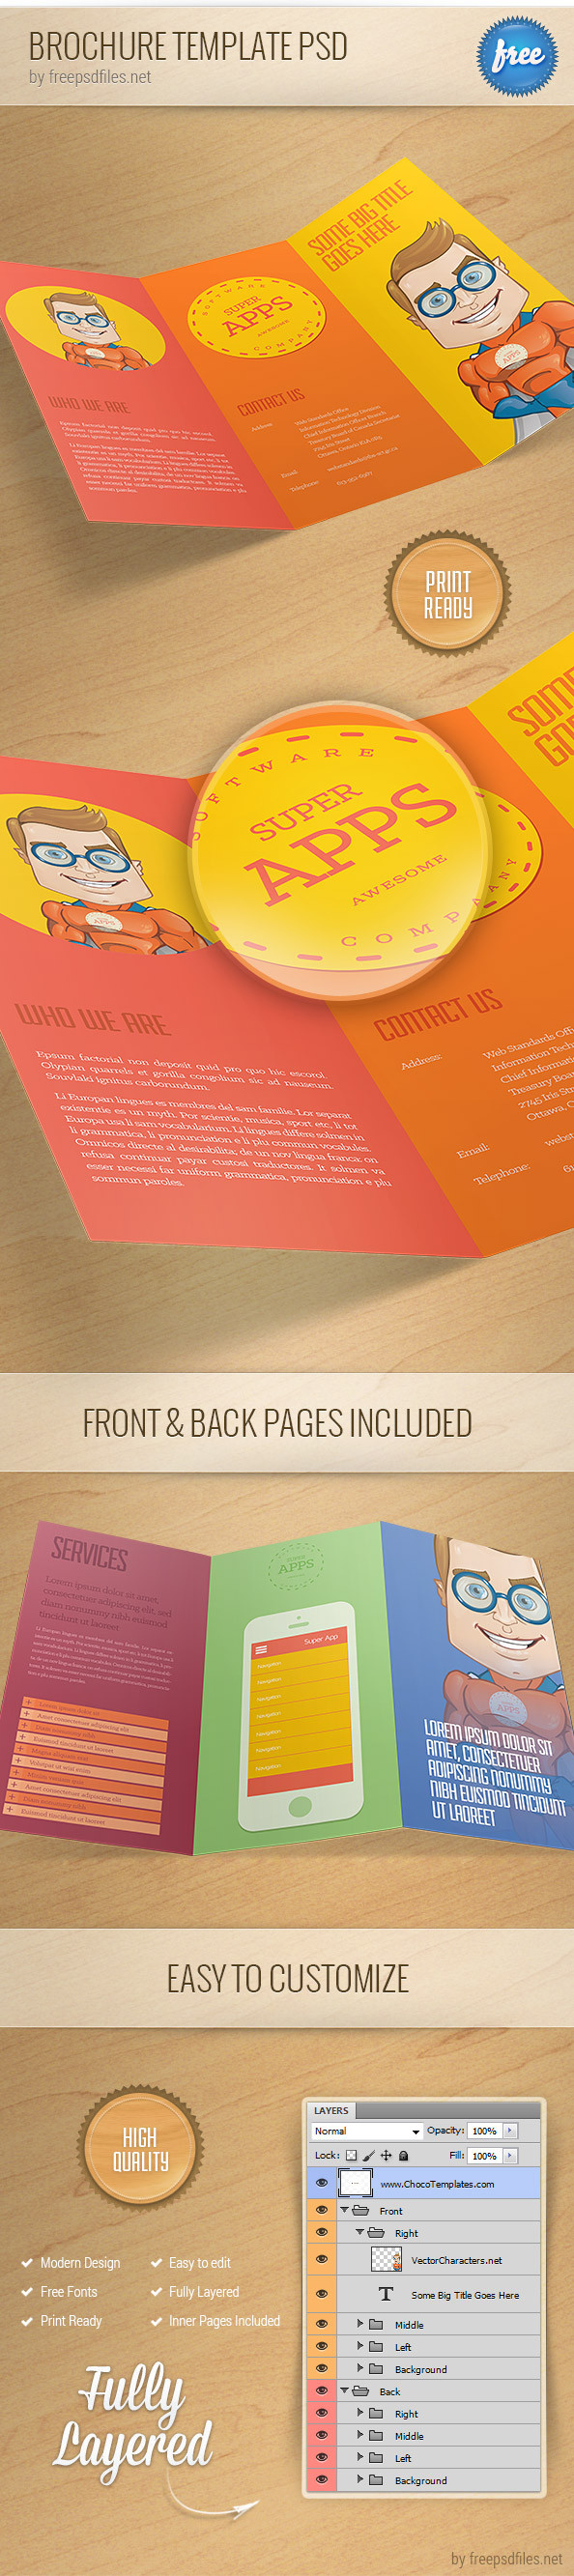 photoshop templates for brochures - 25 best free psd brochure templates free psd templates